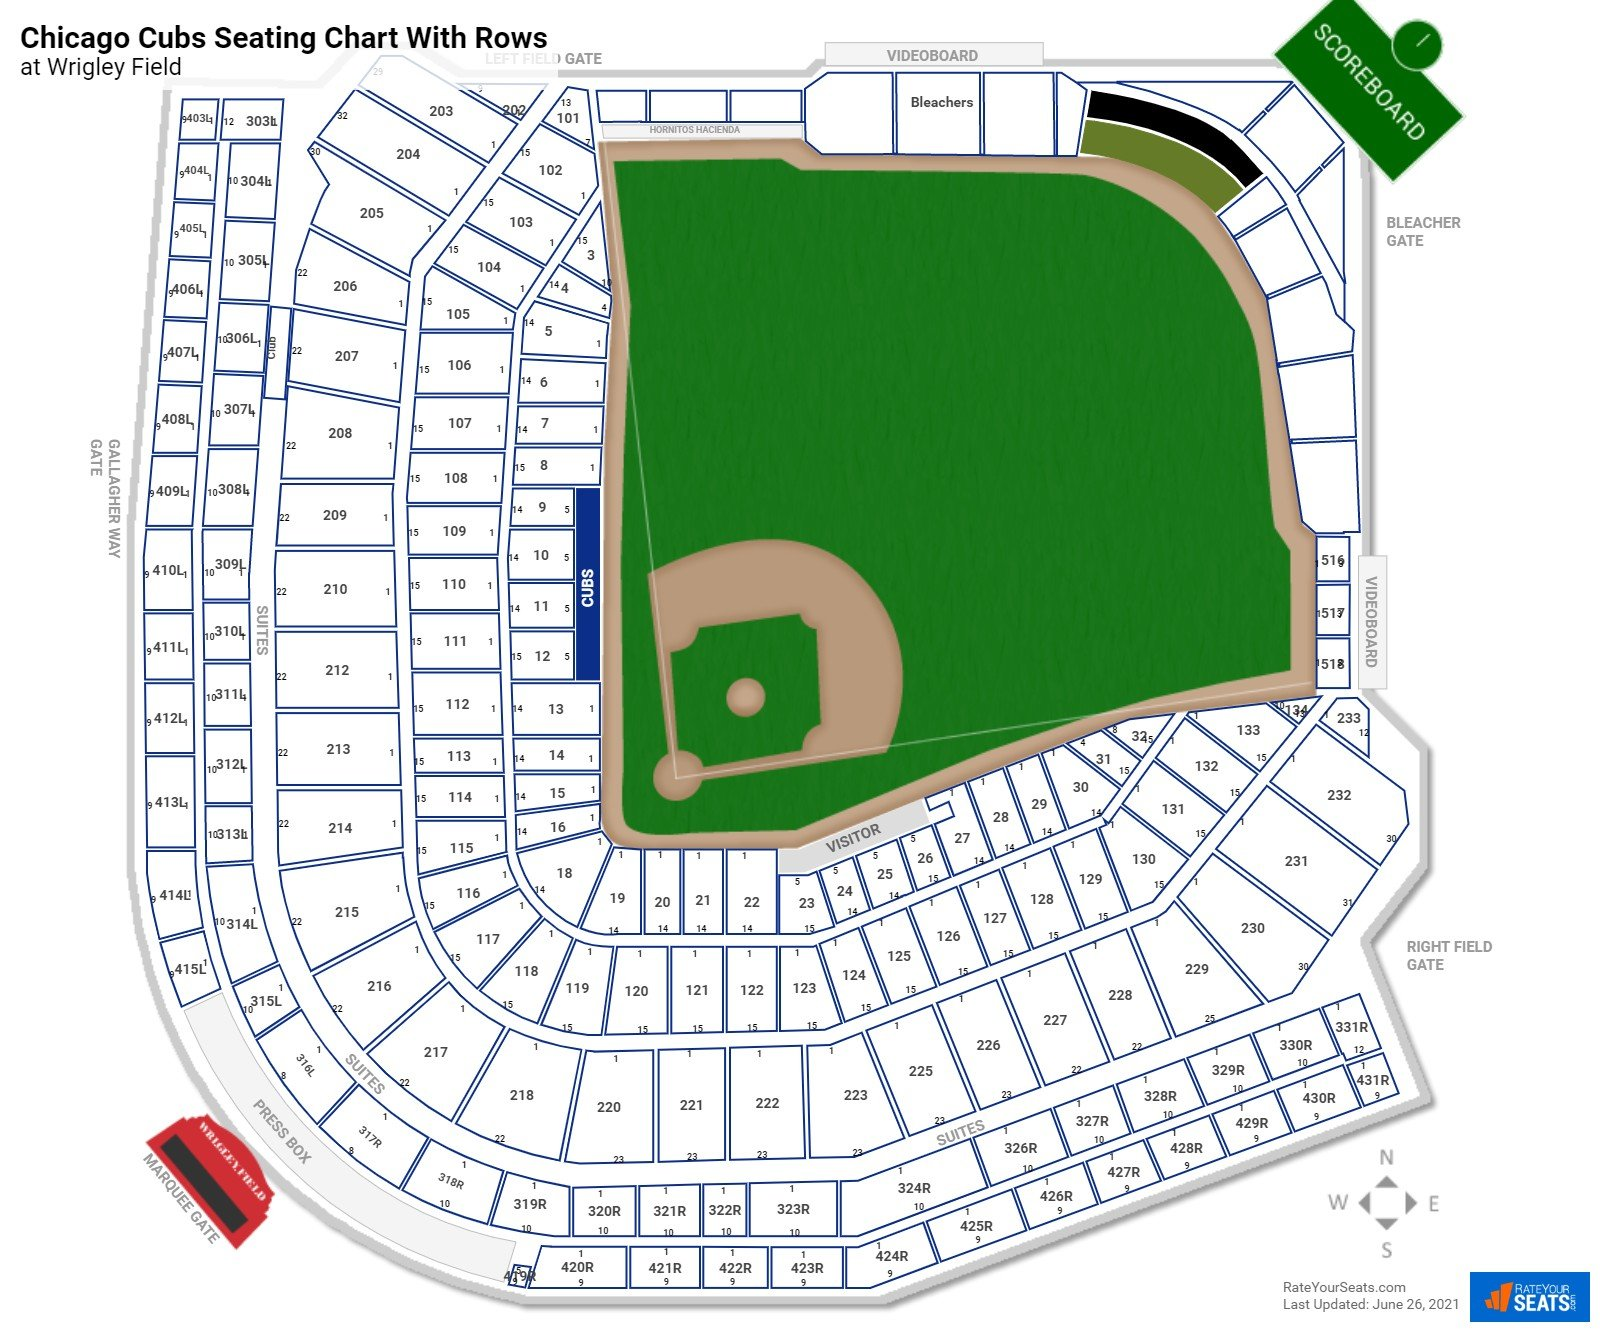 Wrigley Field seating chart with rows baseball